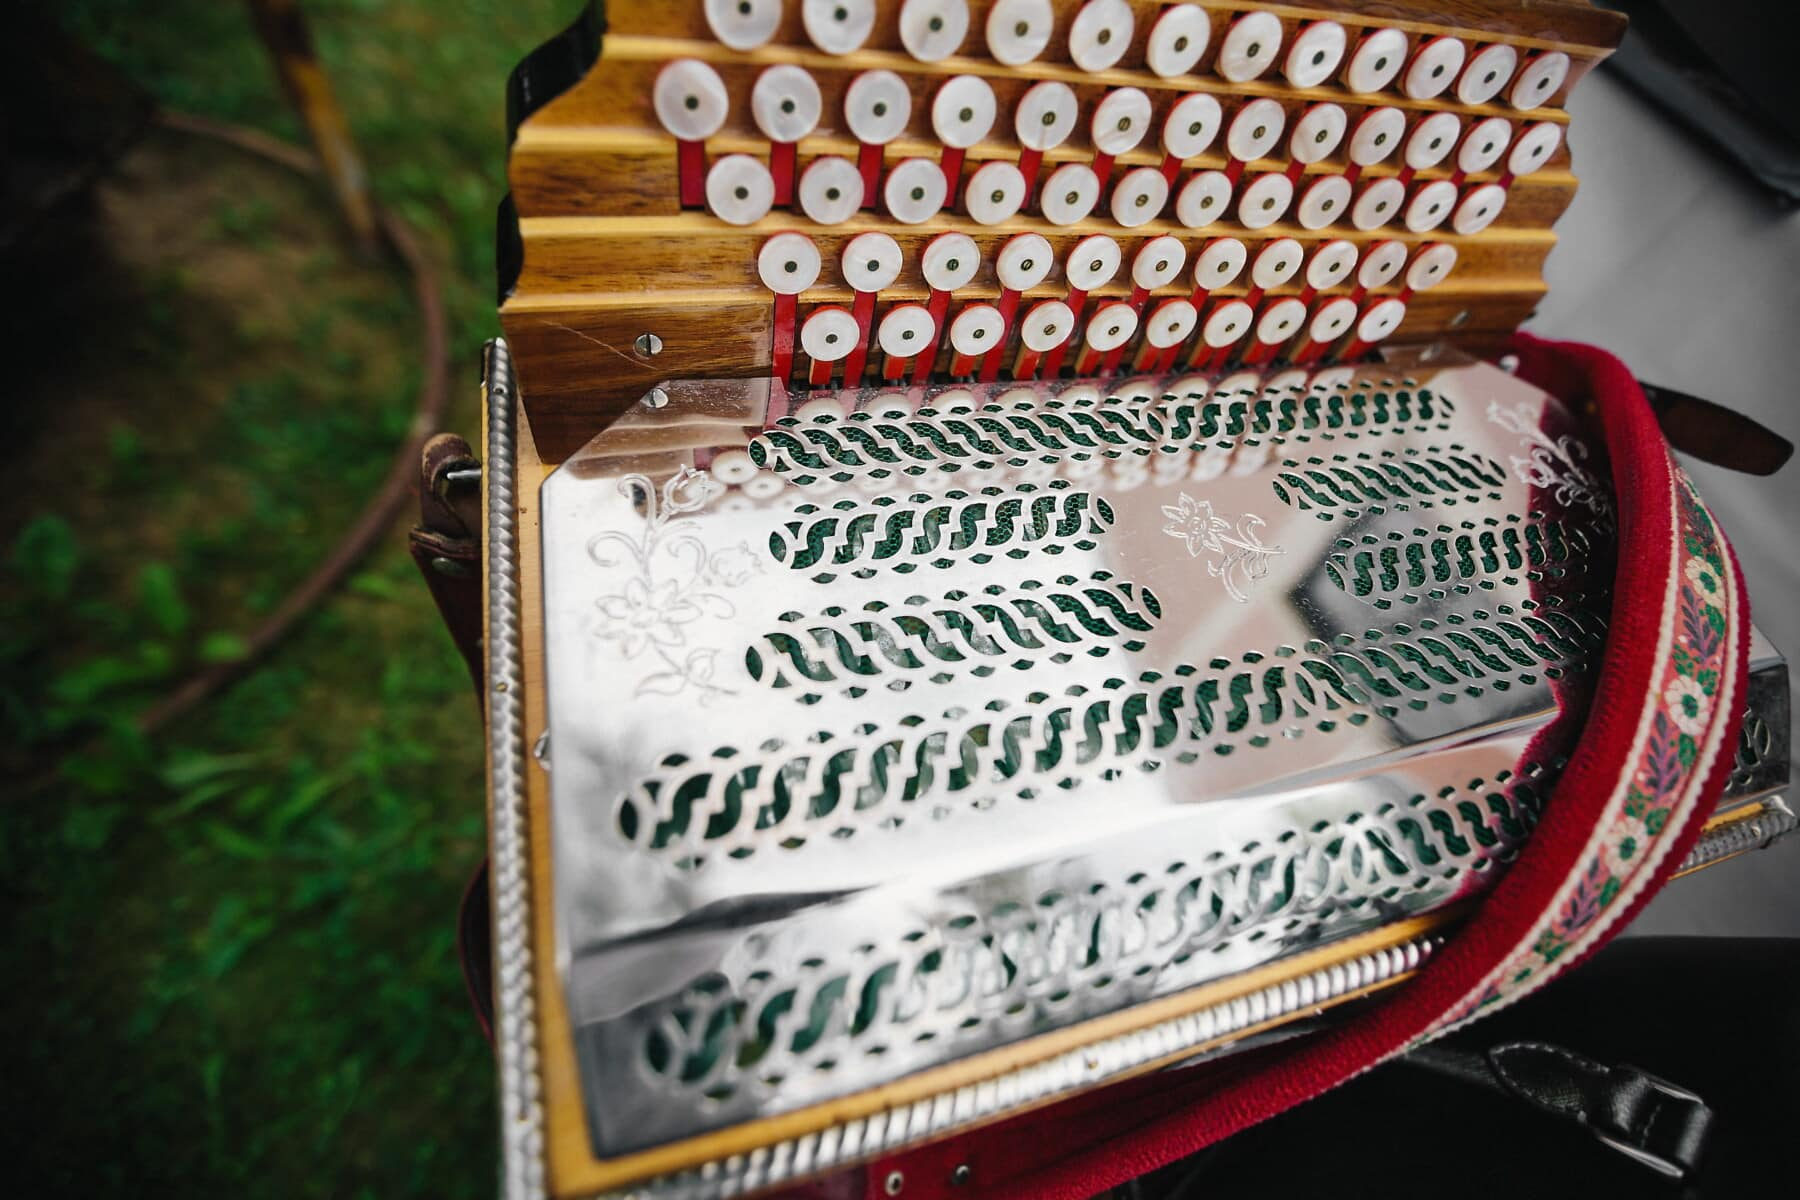 old fashioned, old, accordion, object, buttons, music, melody, metallic, stainless steel, wood